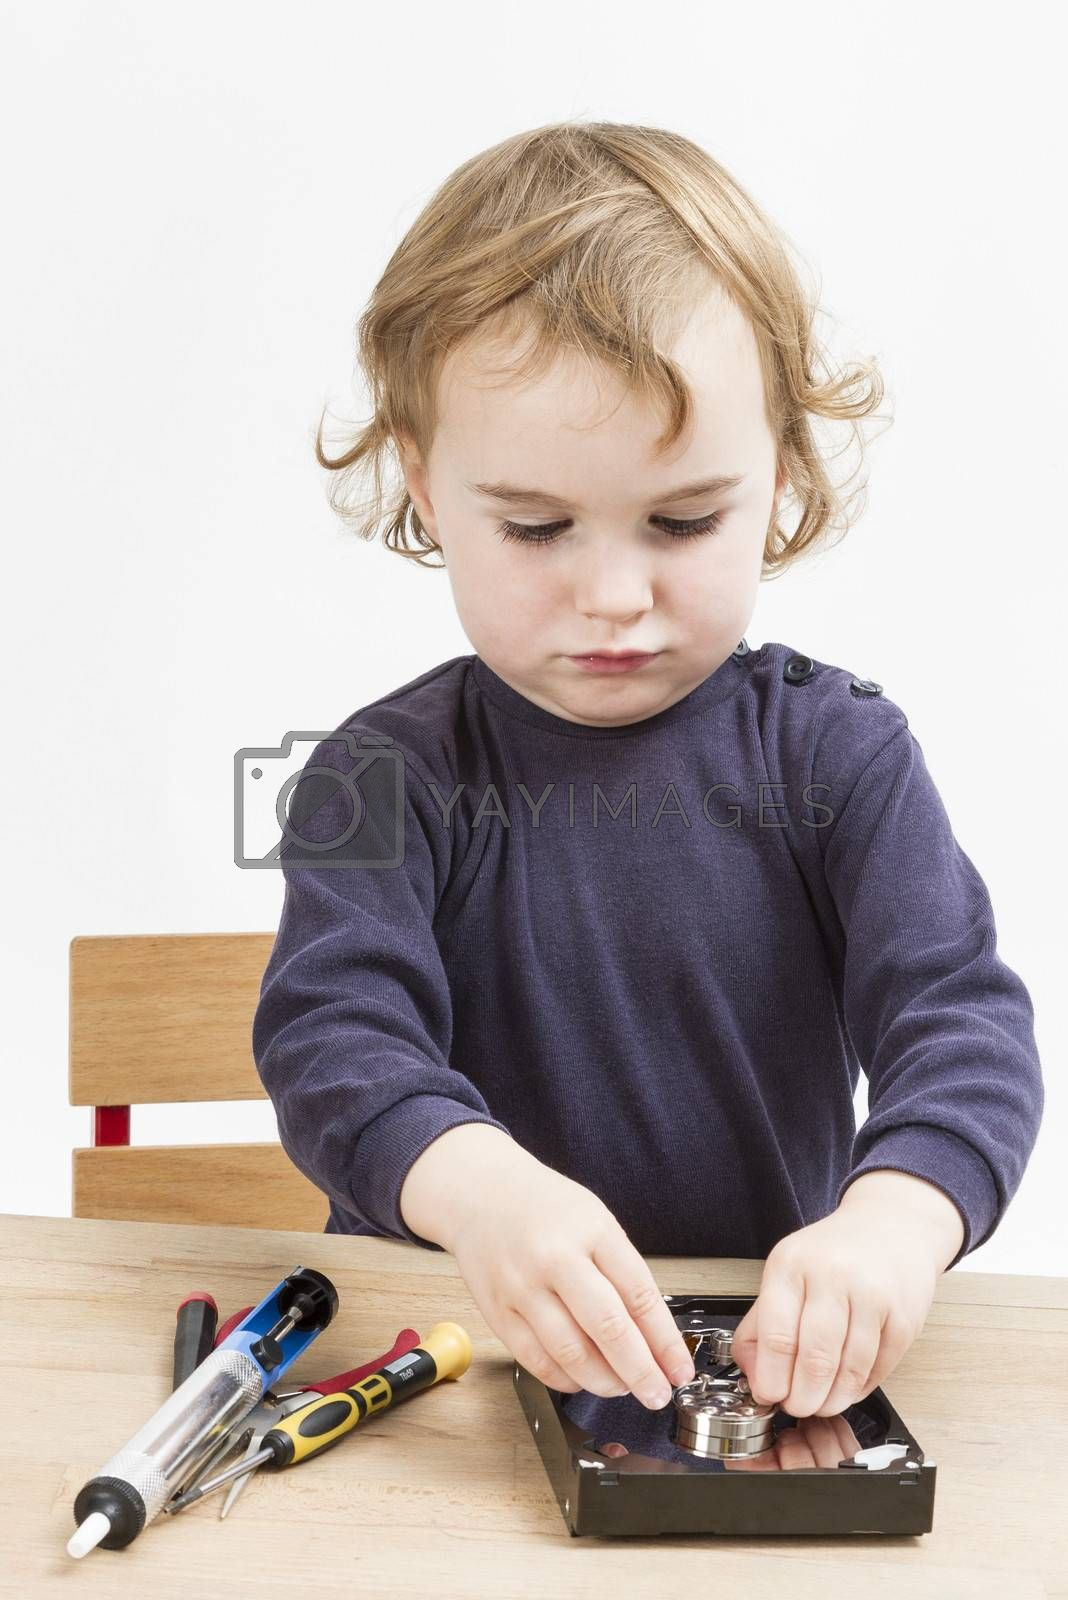 Royalty free image of little girl repairing computer parts by gewoldi